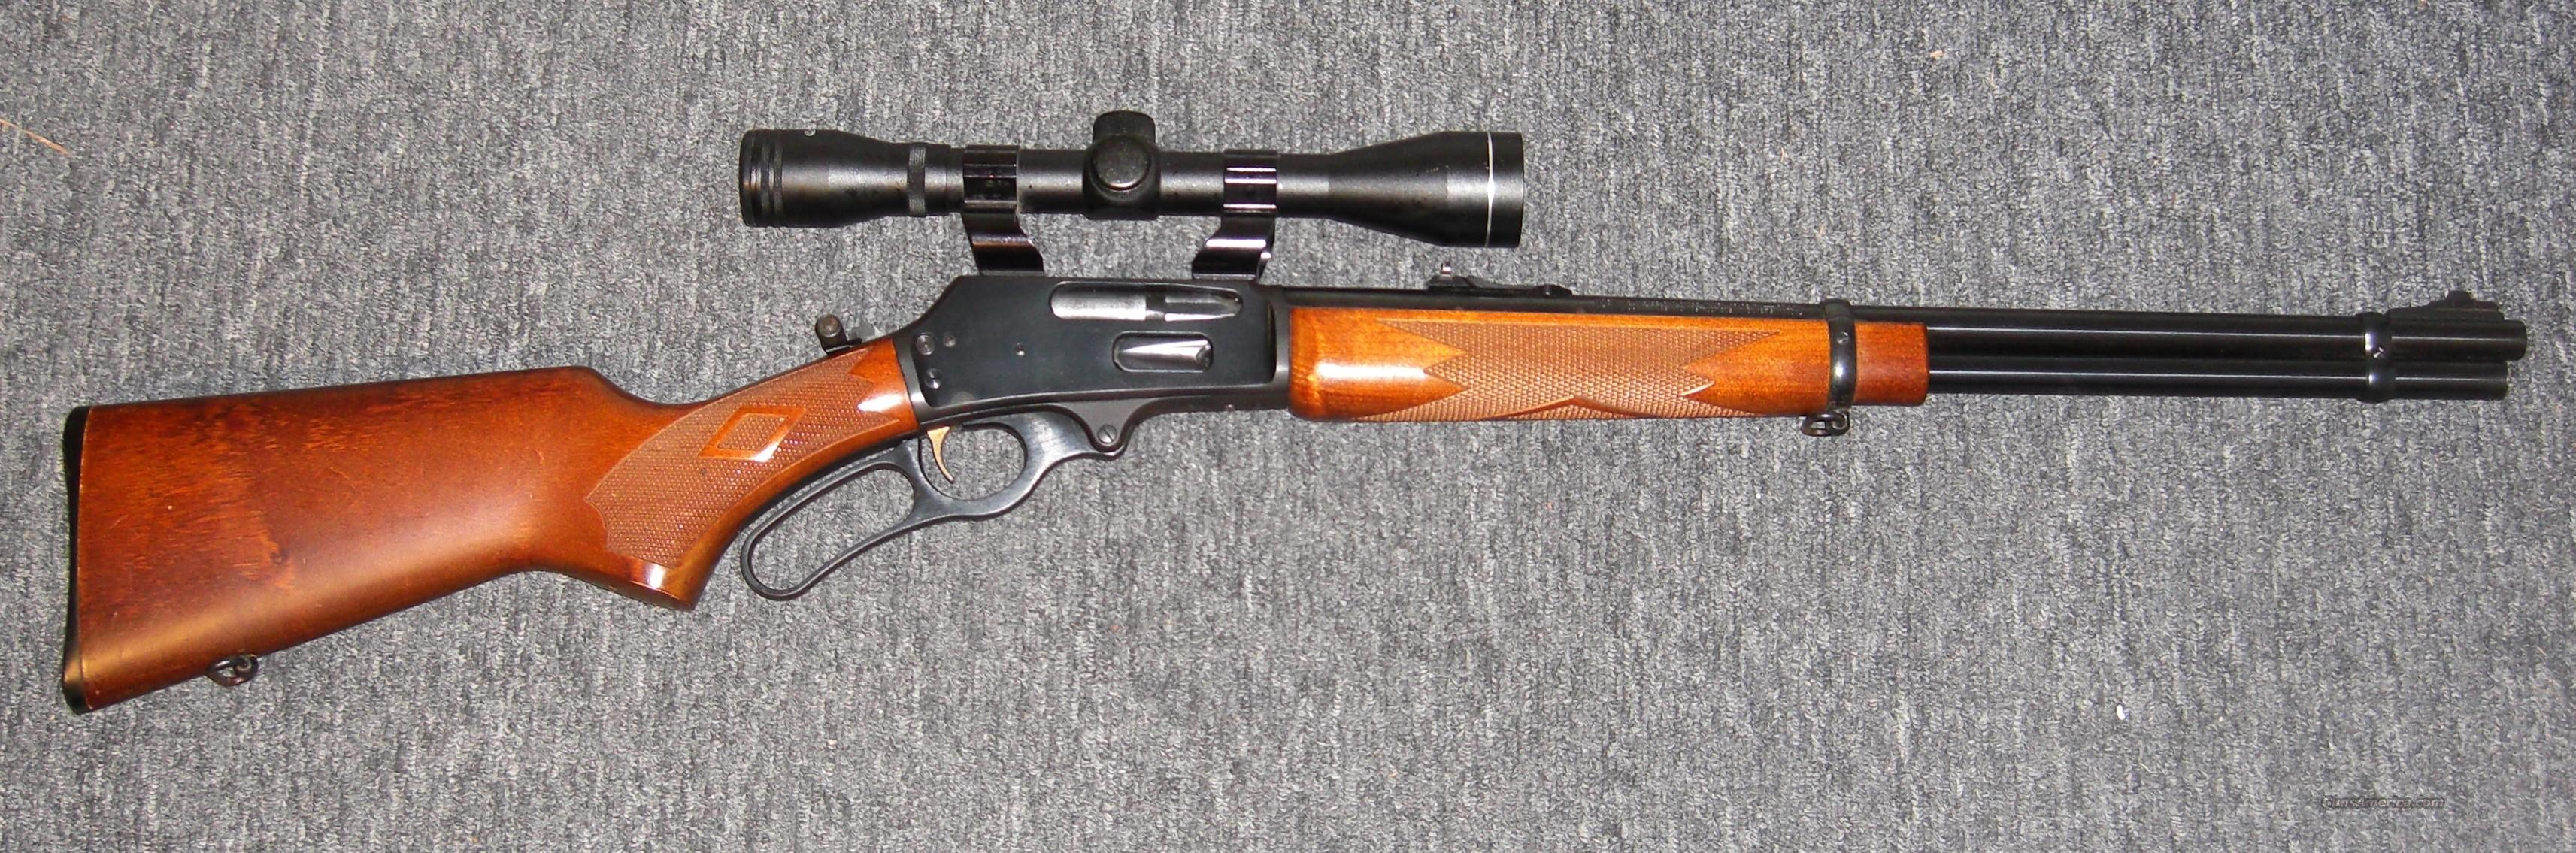 336W w/4x Tasco scope  Guns > Rifles > Marlin Rifles > Modern > Lever Action